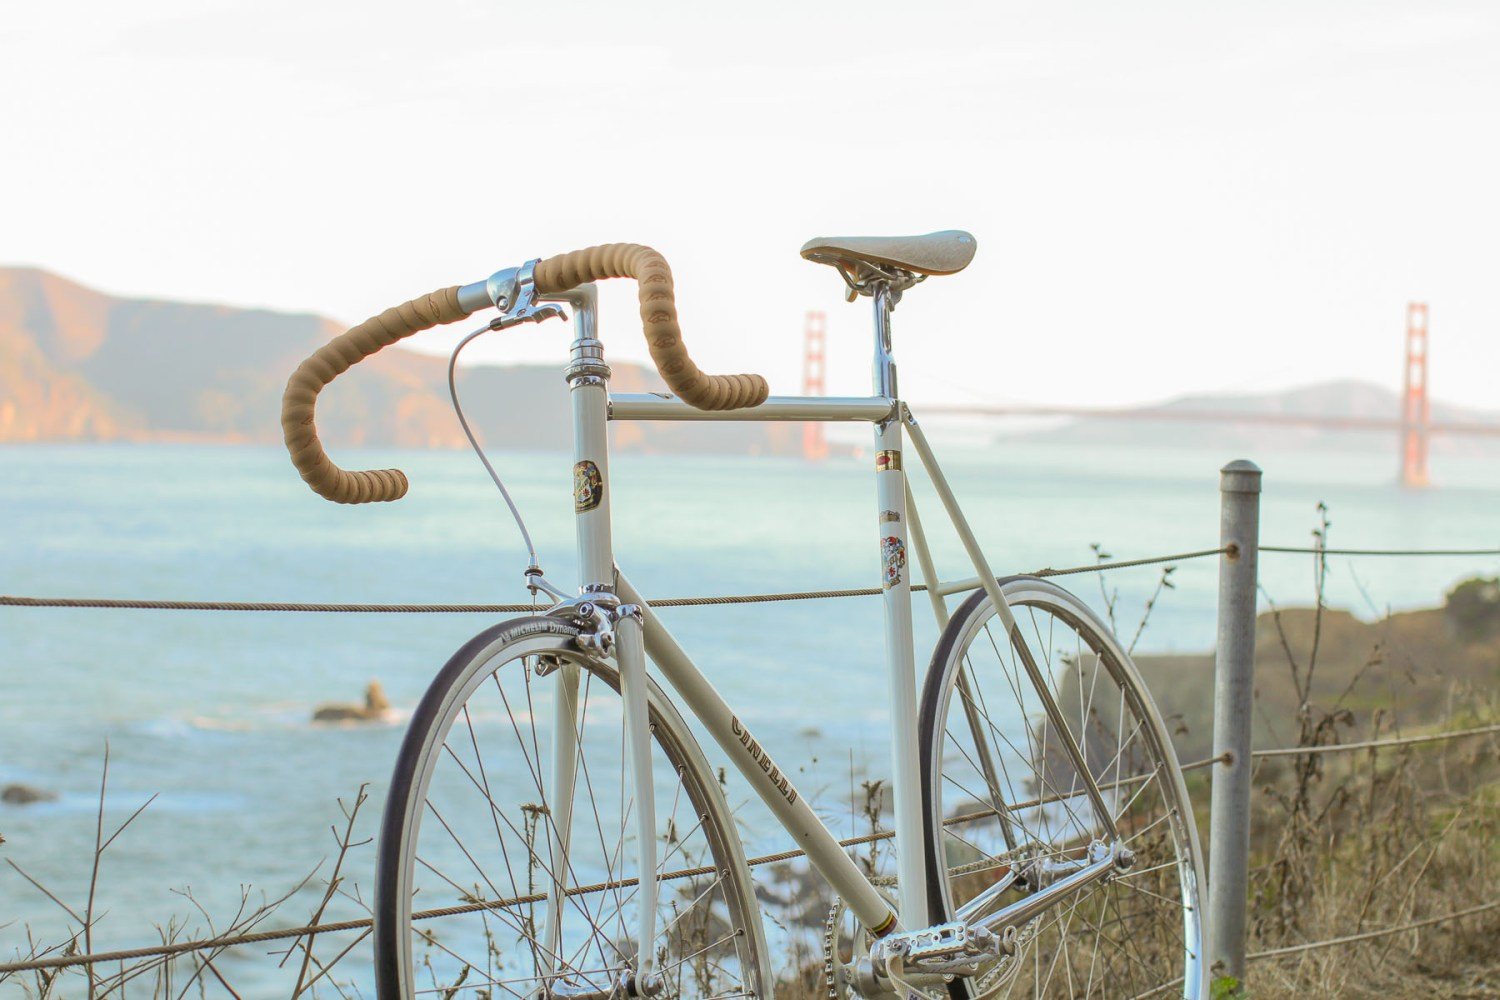 cinelli (2 of 73)